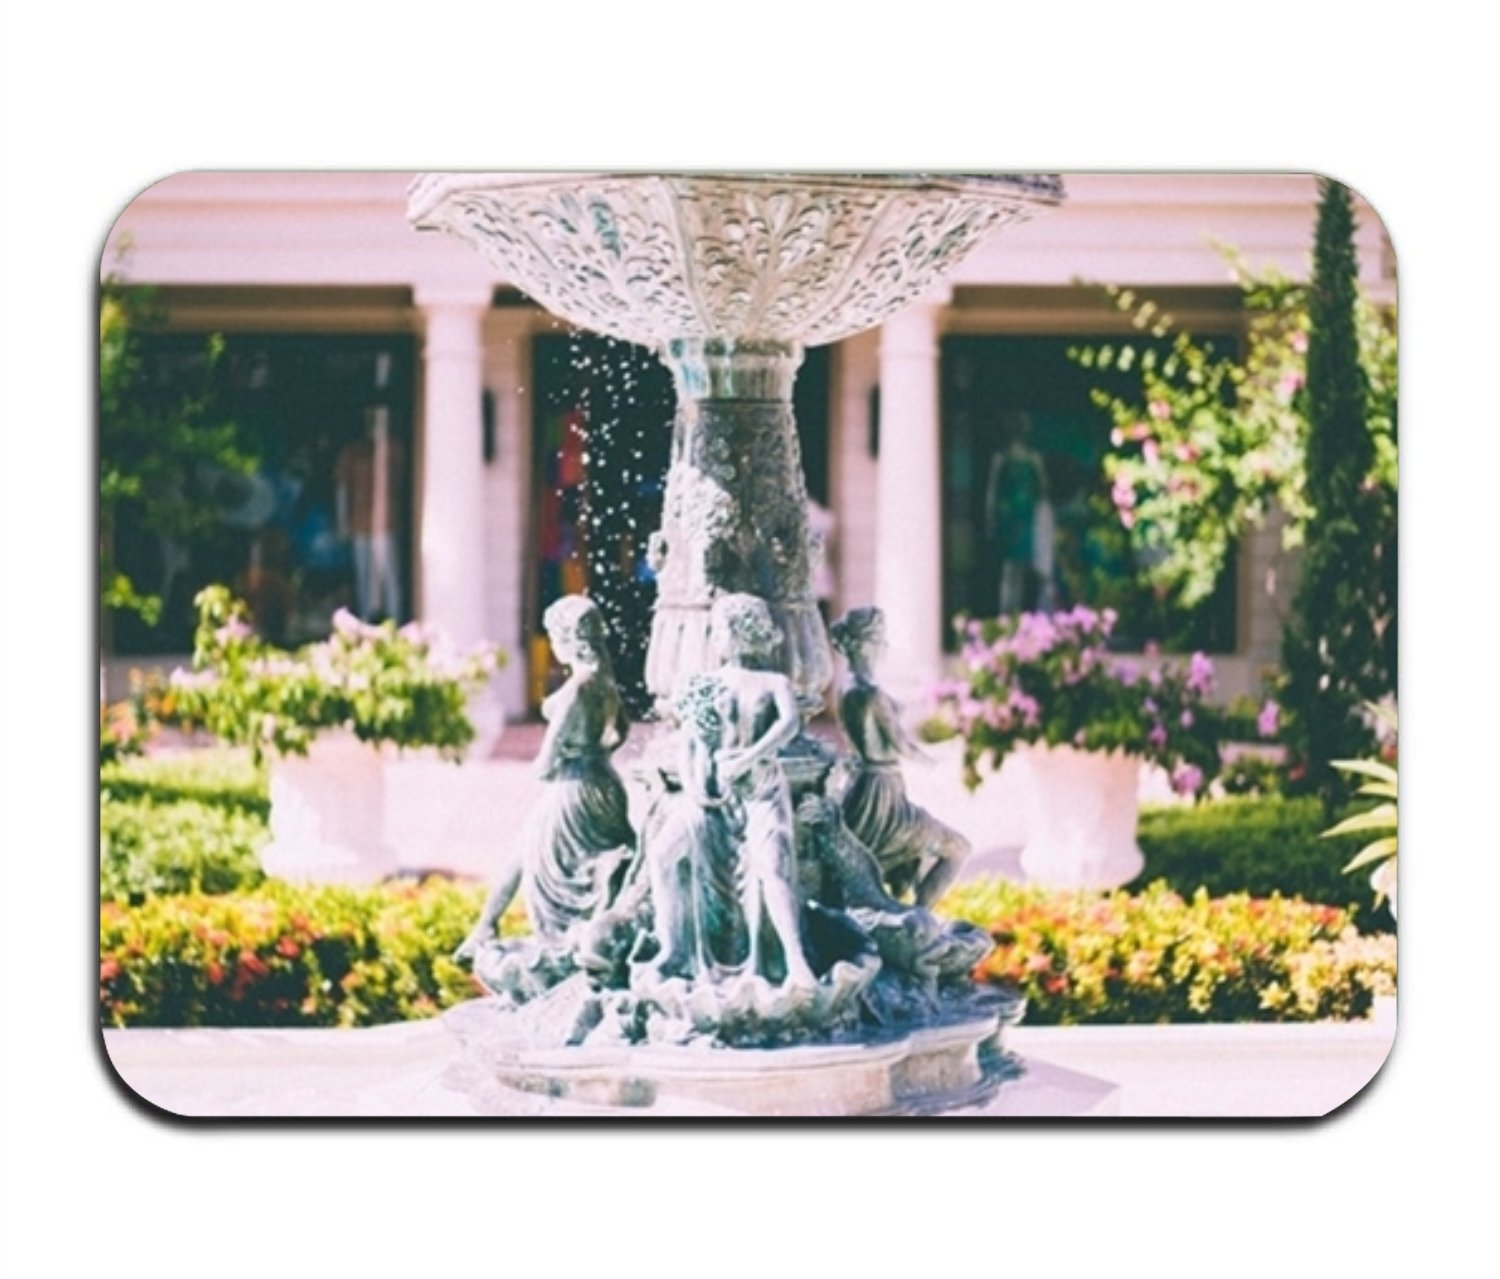 Lucy Curme 32''''(L) x 20''''(W),Statue Fountain Flower Indoor/Outdoor Floor Mats Living Room Bedroom Doormat